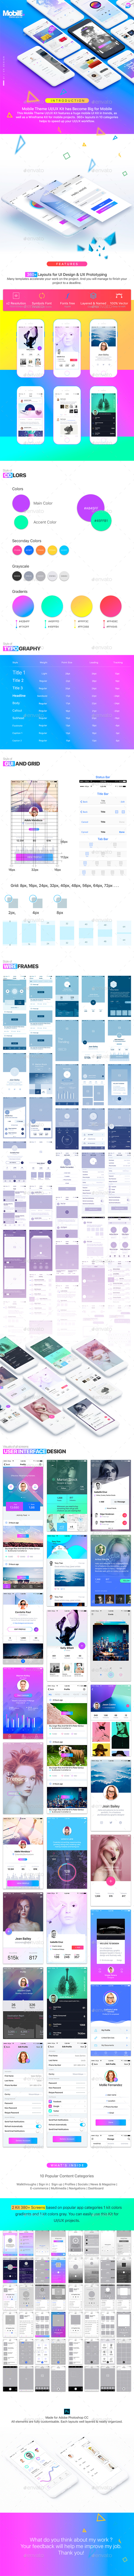 4ocal Web UI Kit for Photoshop (User Interfaces)